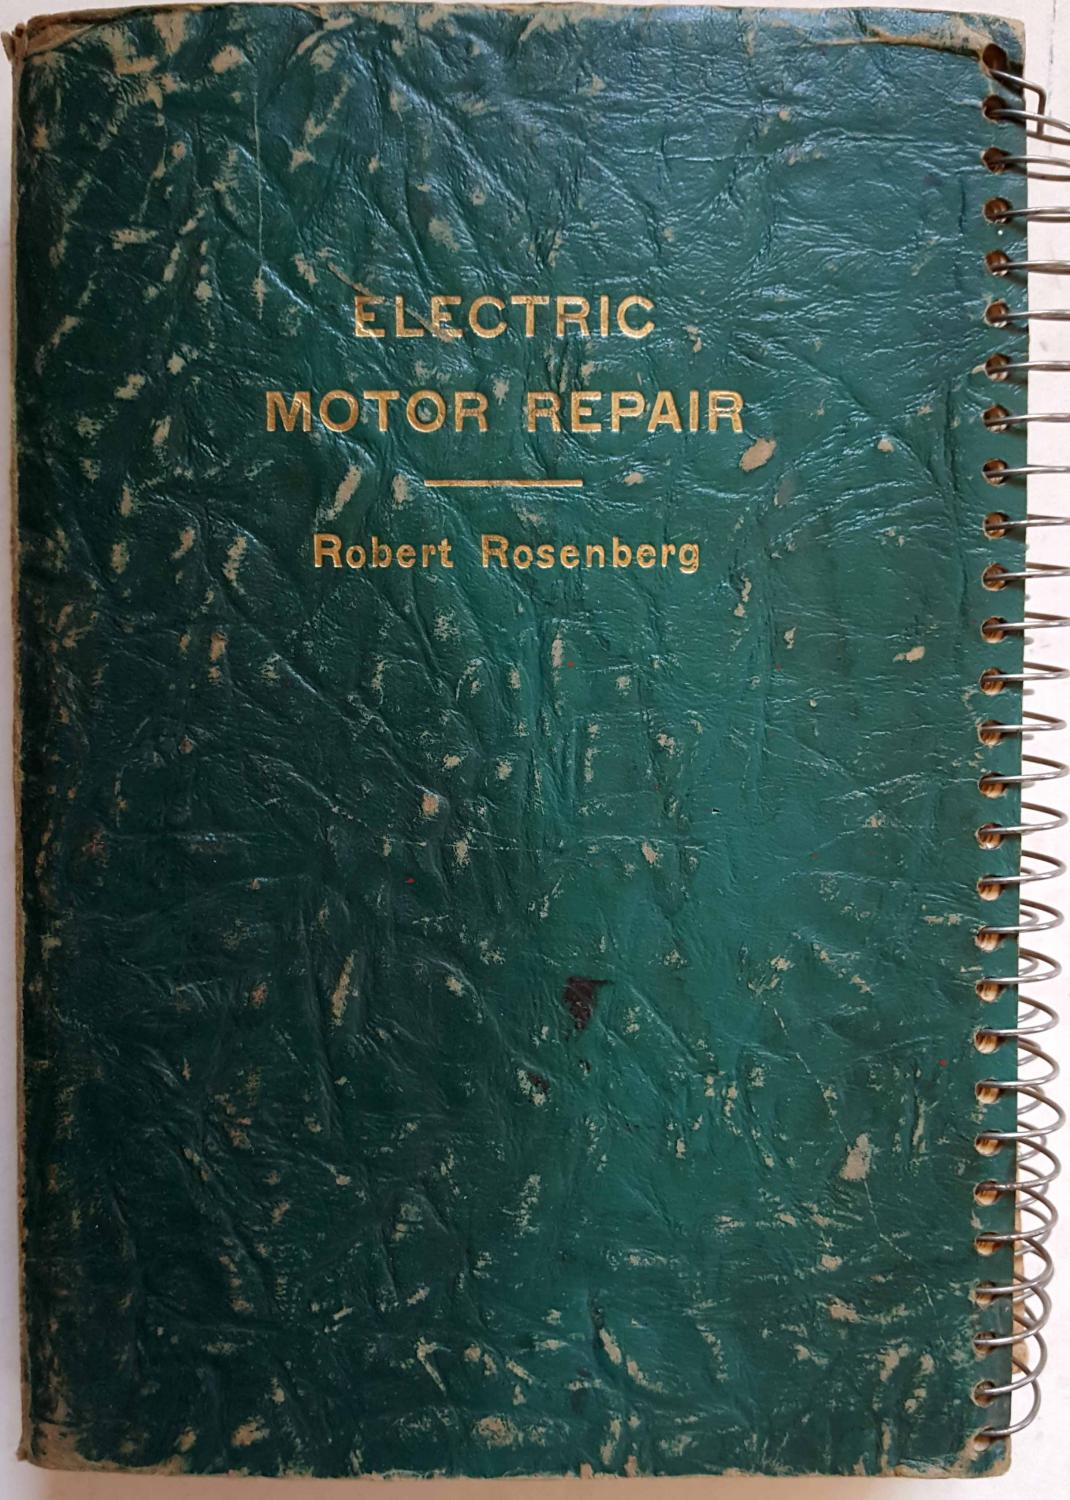 electrical motor winding books | Automotivegarage.org